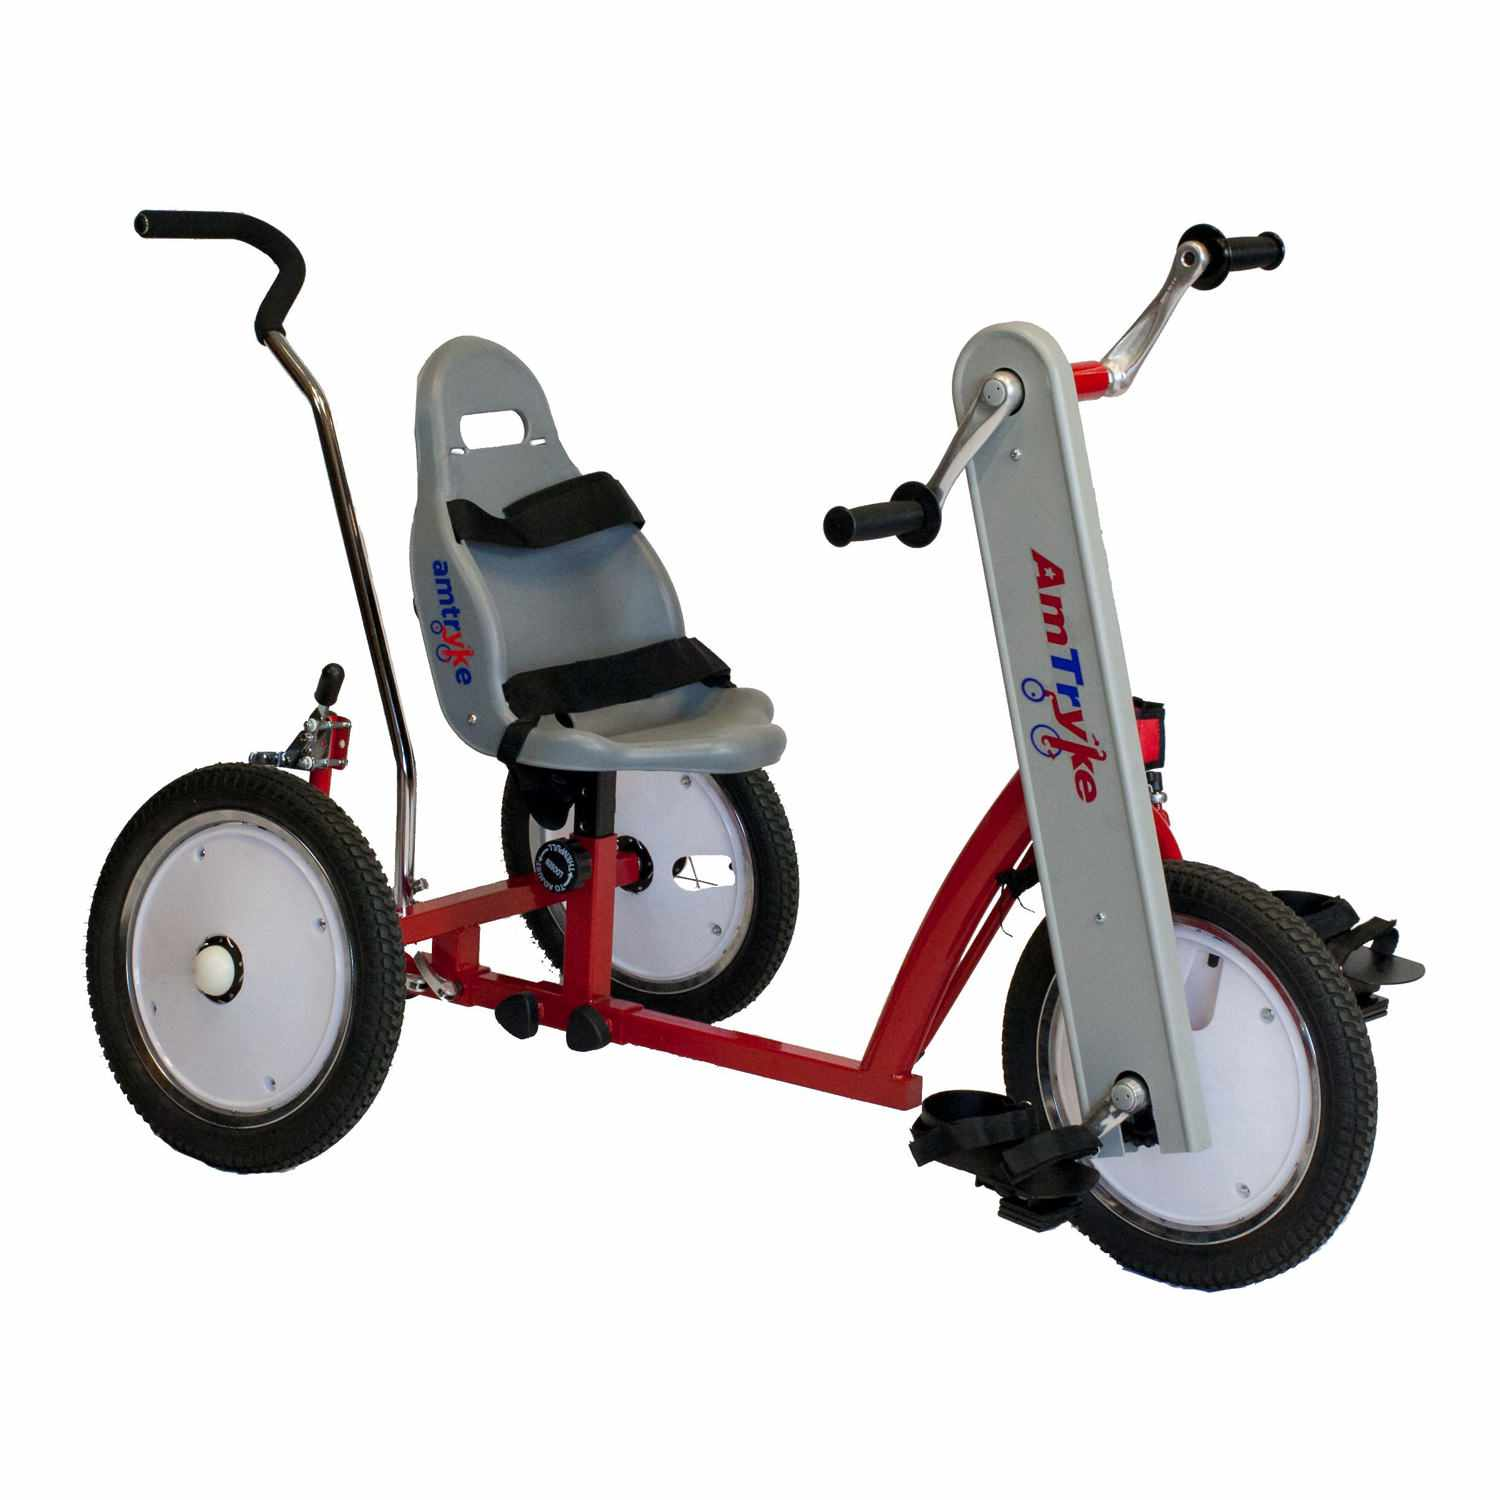 Amtryke AM-16 Tricycle With Bucket Seat | Amtryke Tricycles